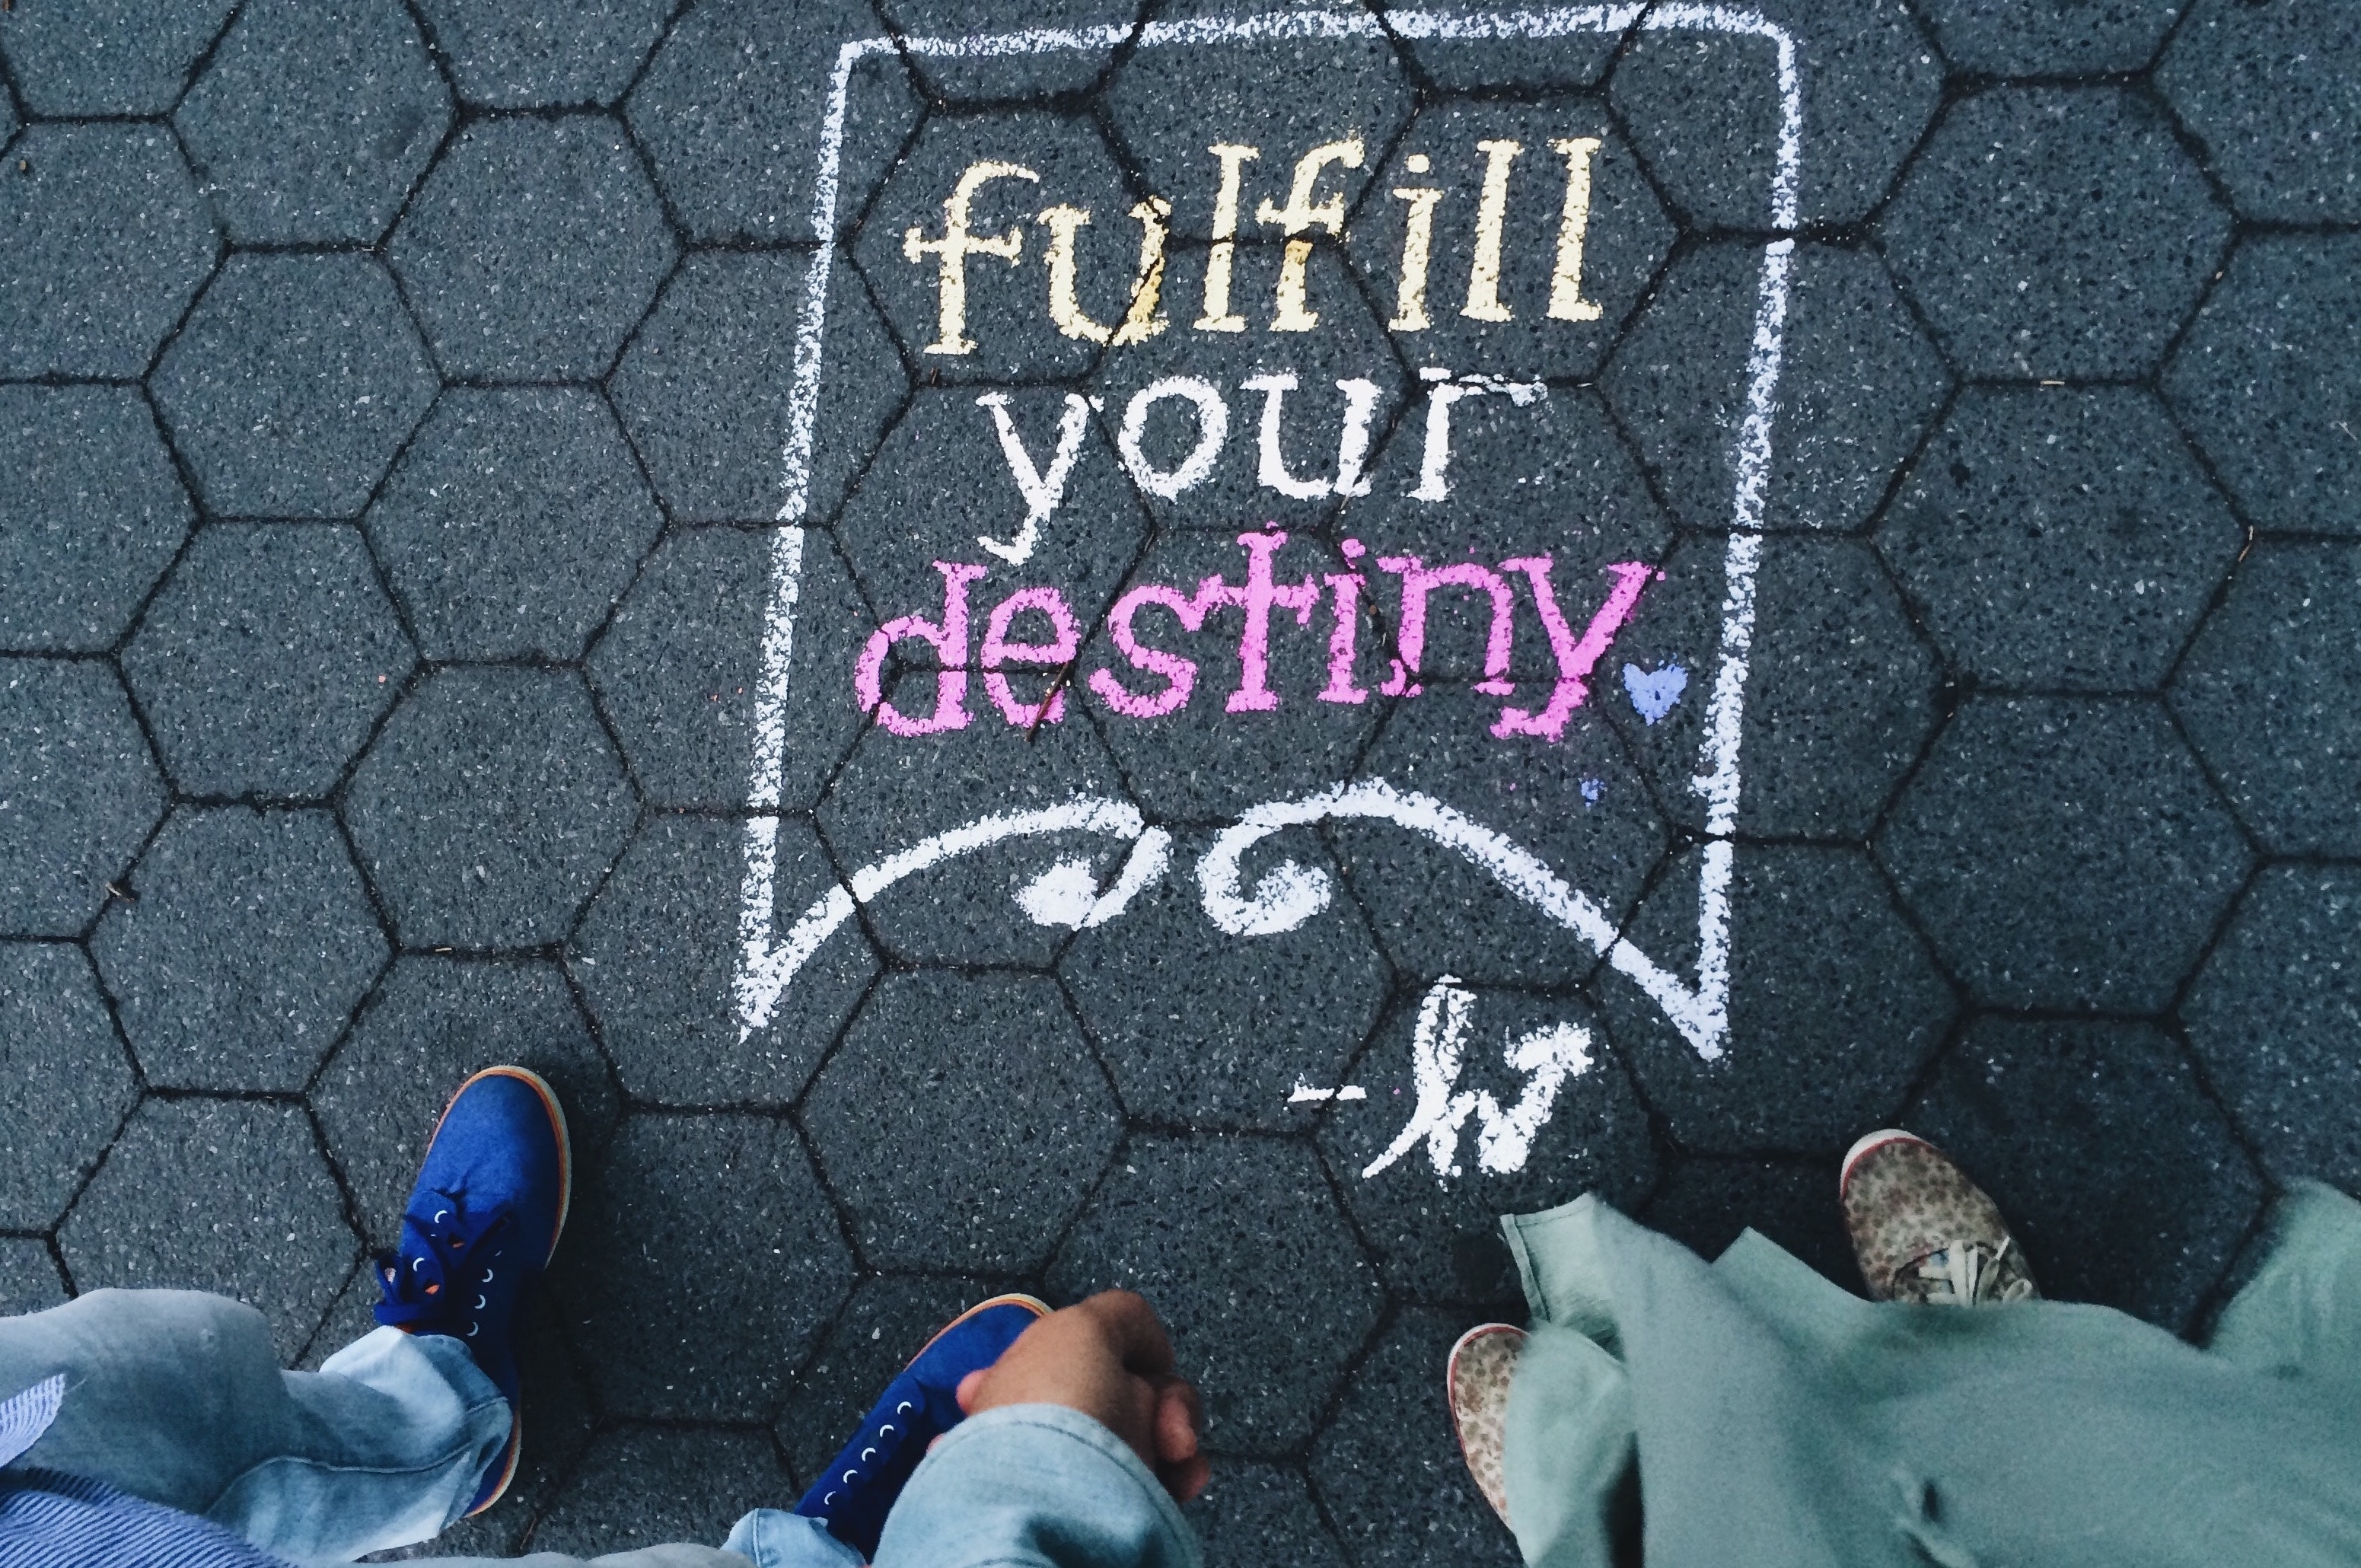 Fullfill your destiny